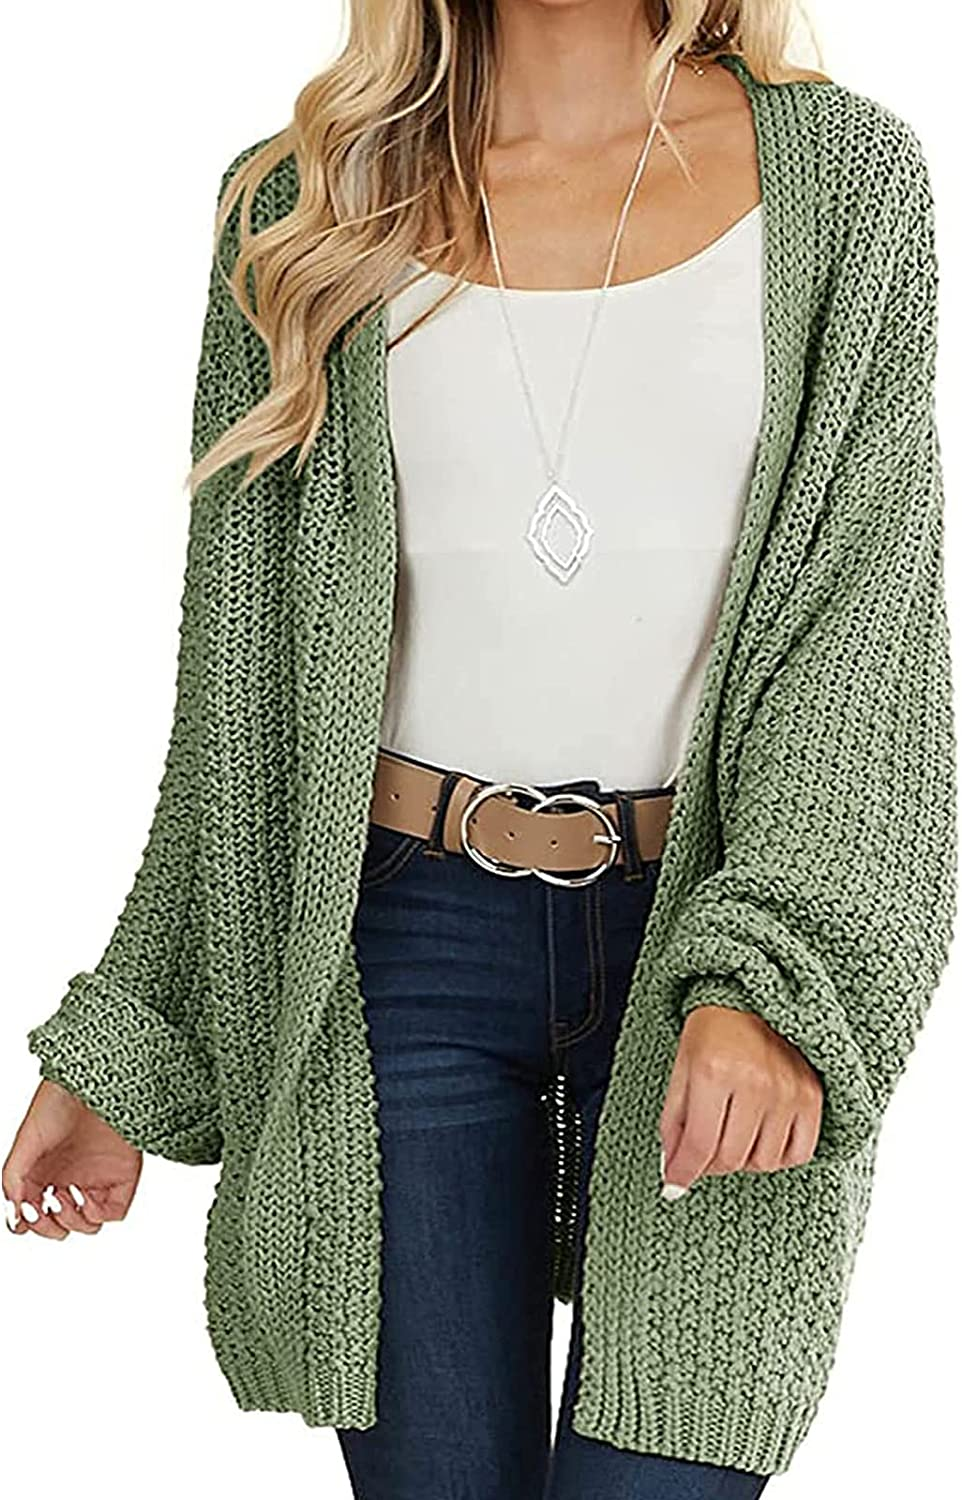 HIFUAR Womens Cardigan Sweater Long Sleeve Oversized Open Front Chunky Cable Knit Cardigans Fuzzy Sweaters